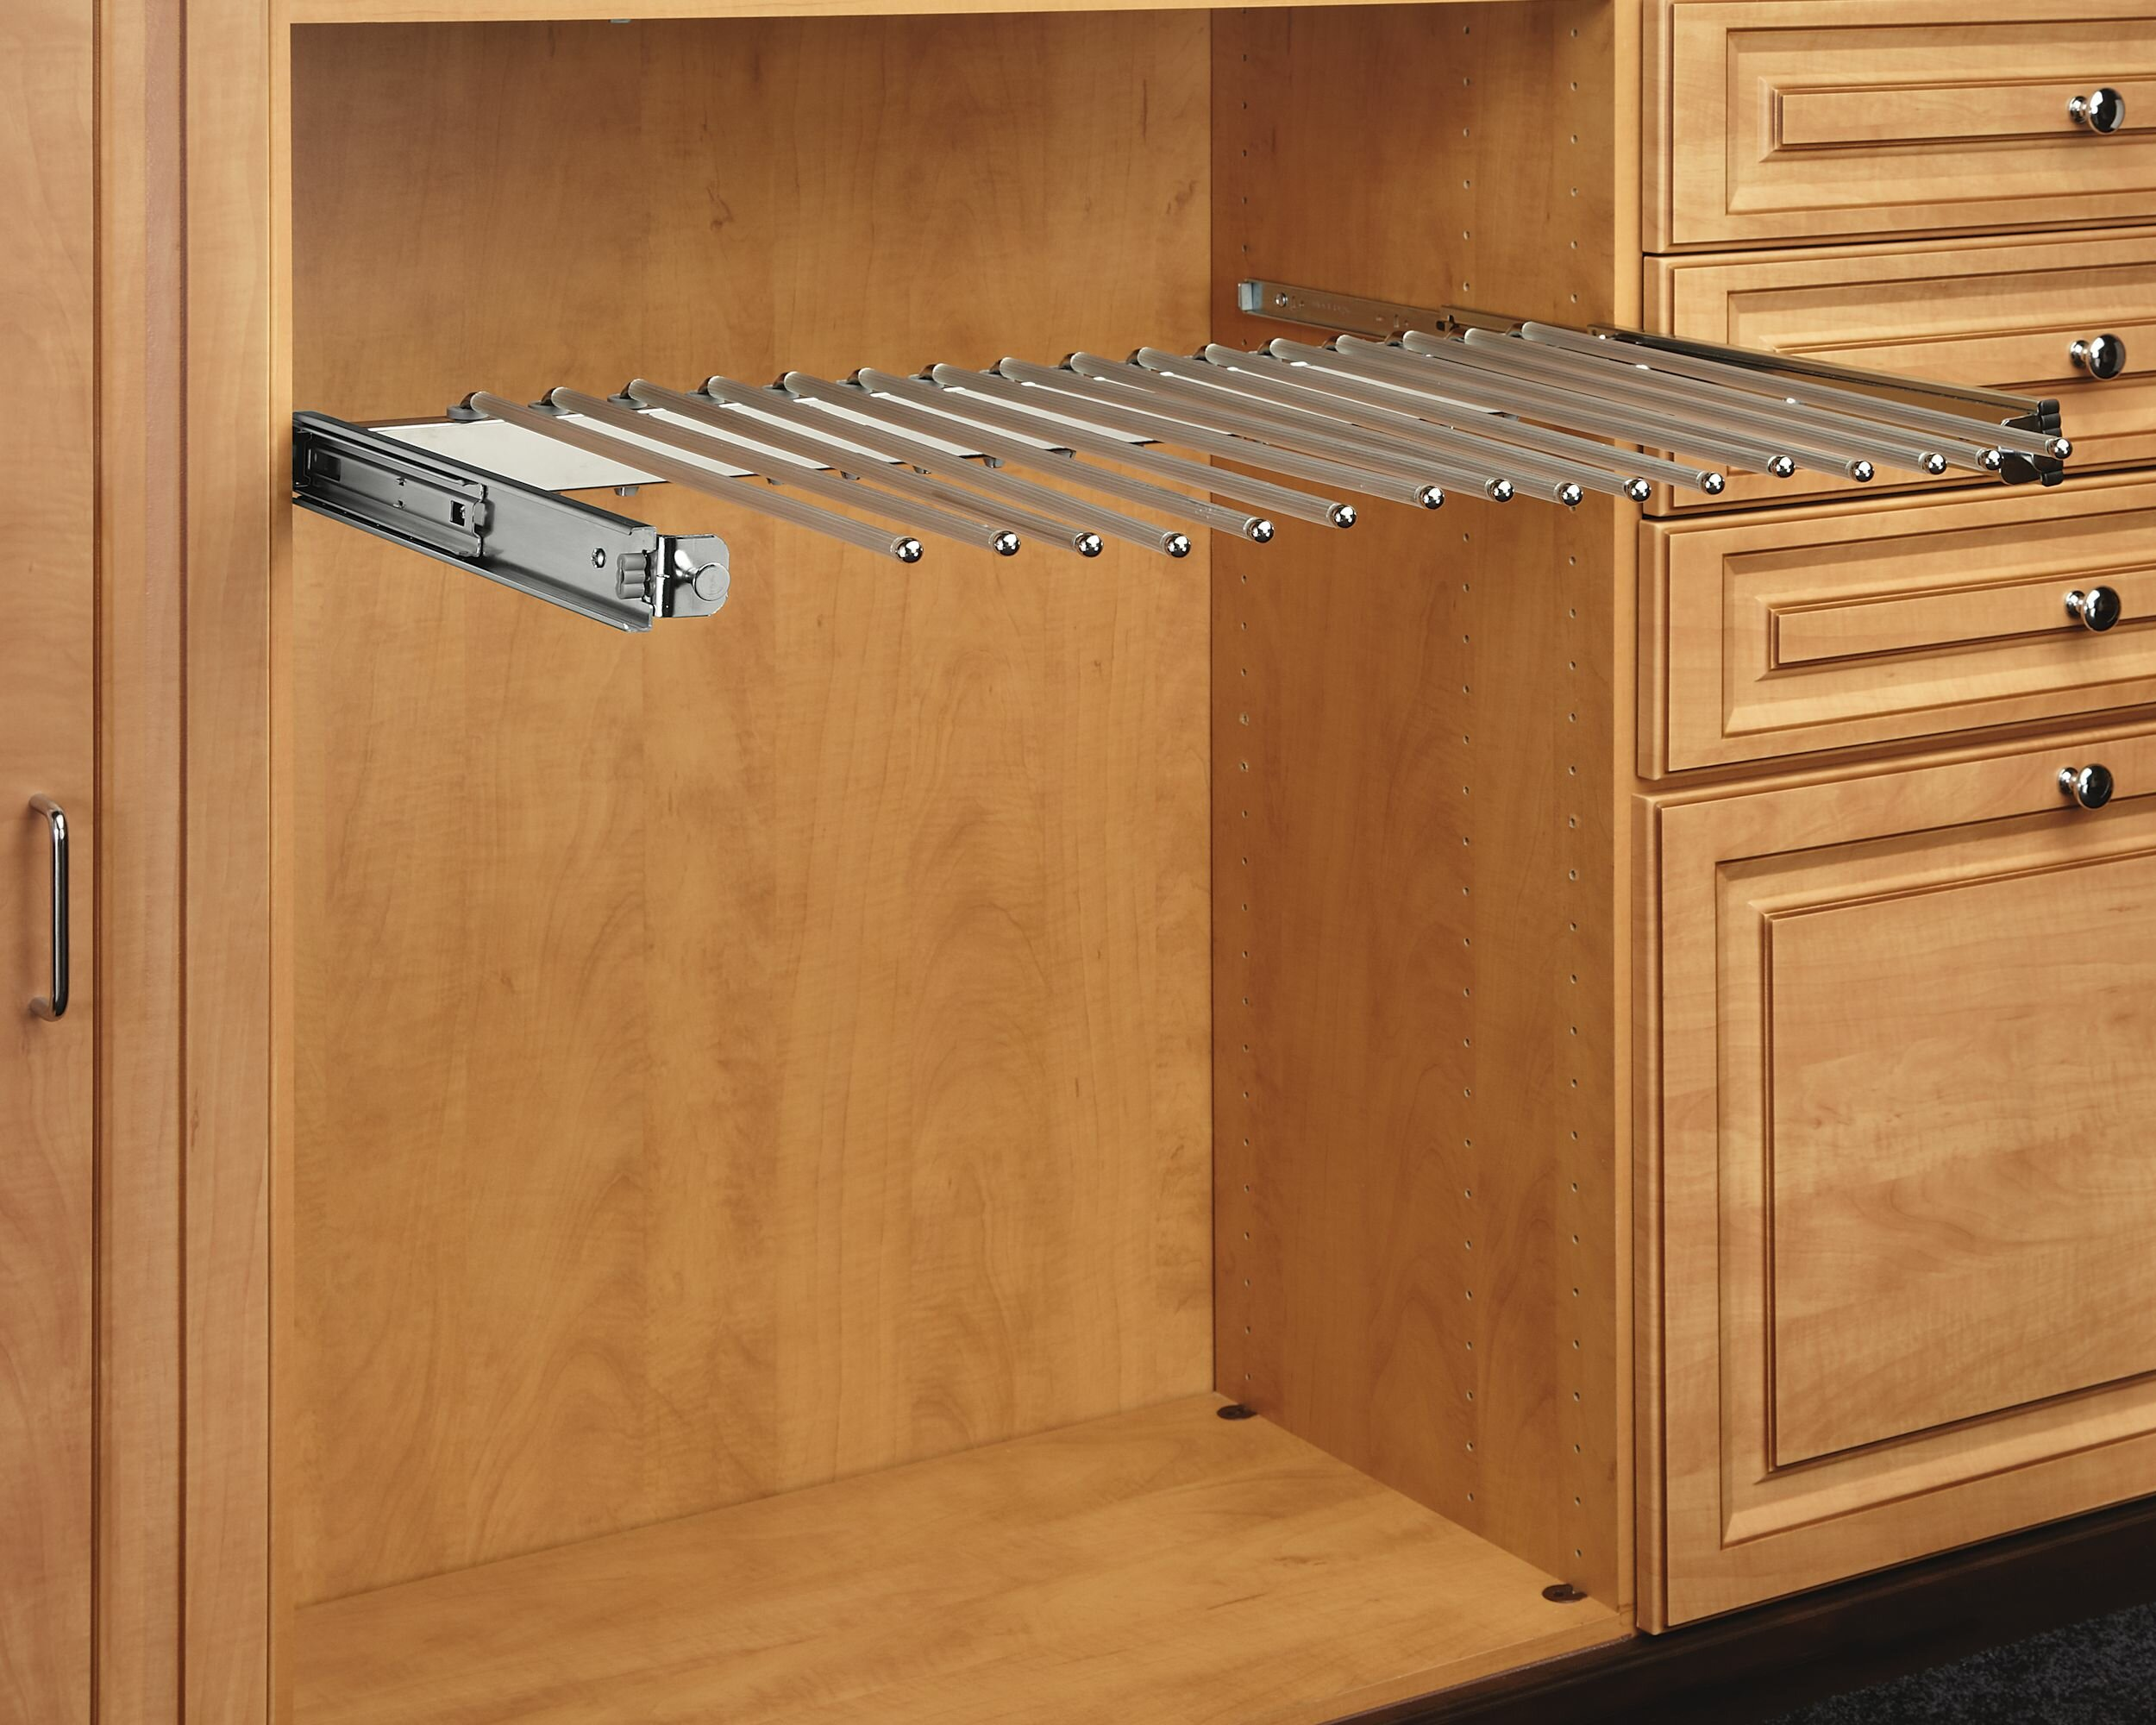 closet reviews wayfair storage slide pants pdx full rev a with pull rack out extension organization shelf